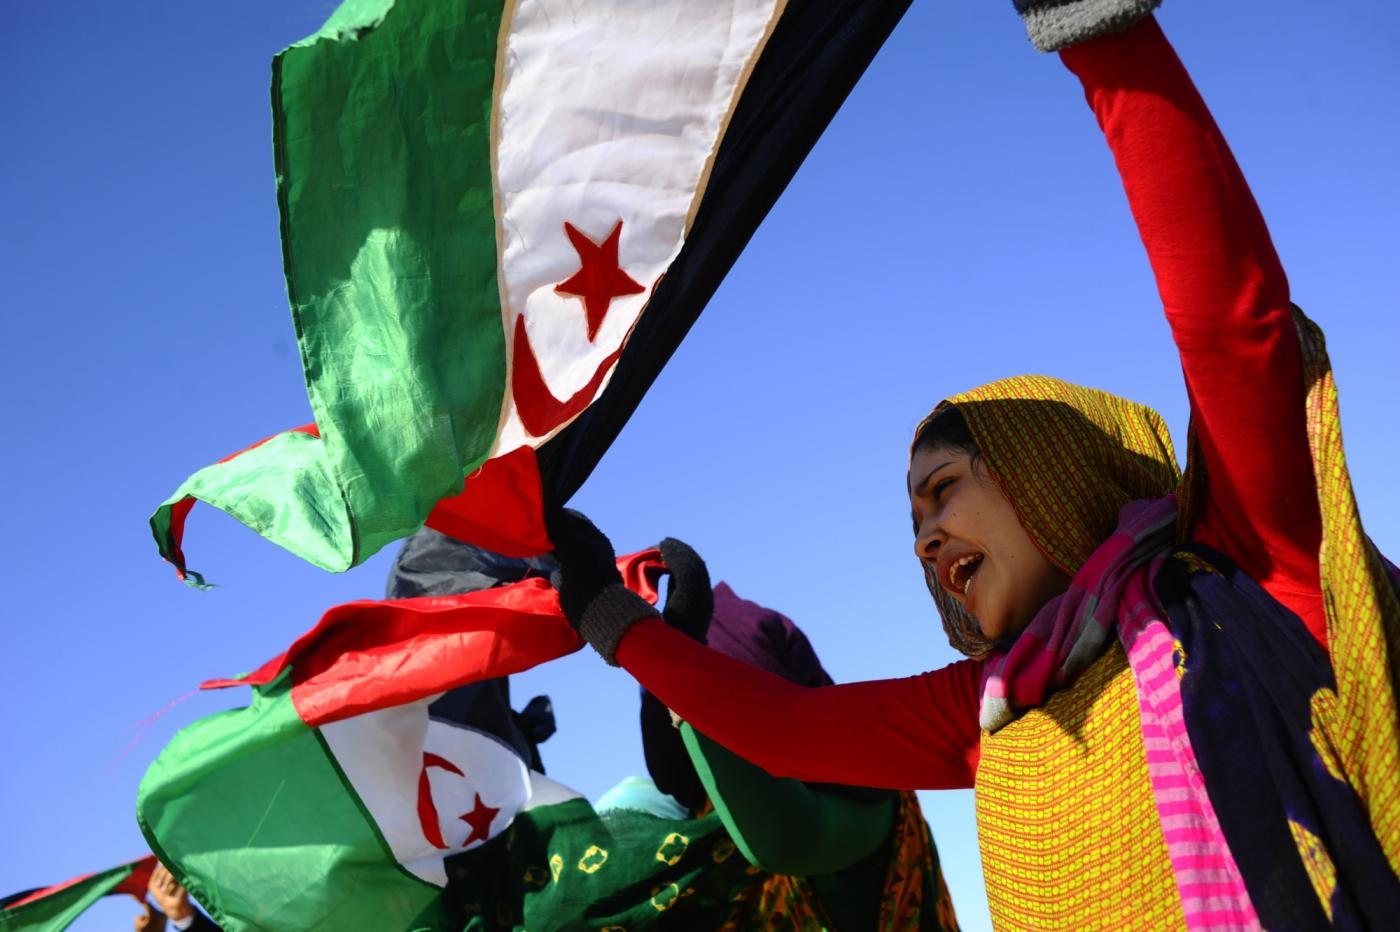 A Sahrawi woman protests in Western Sahara in 2014 (MEE/Oscar Rickett)